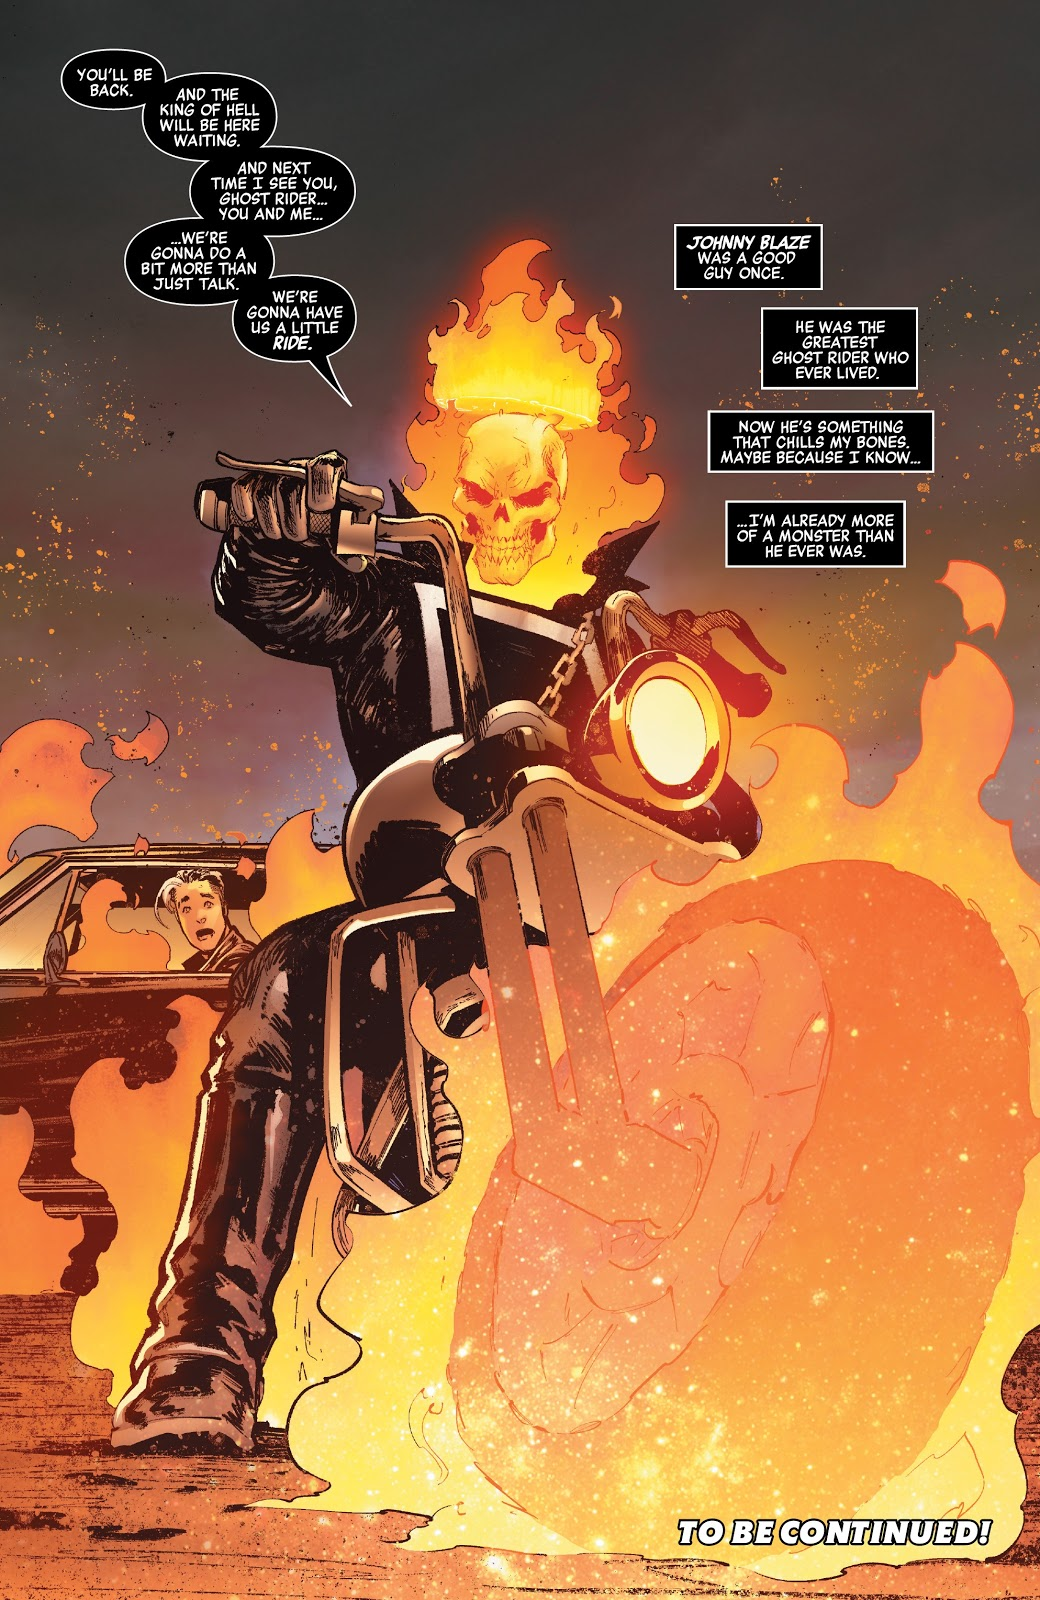 Avengers Endgame 2019 Ghost riders book